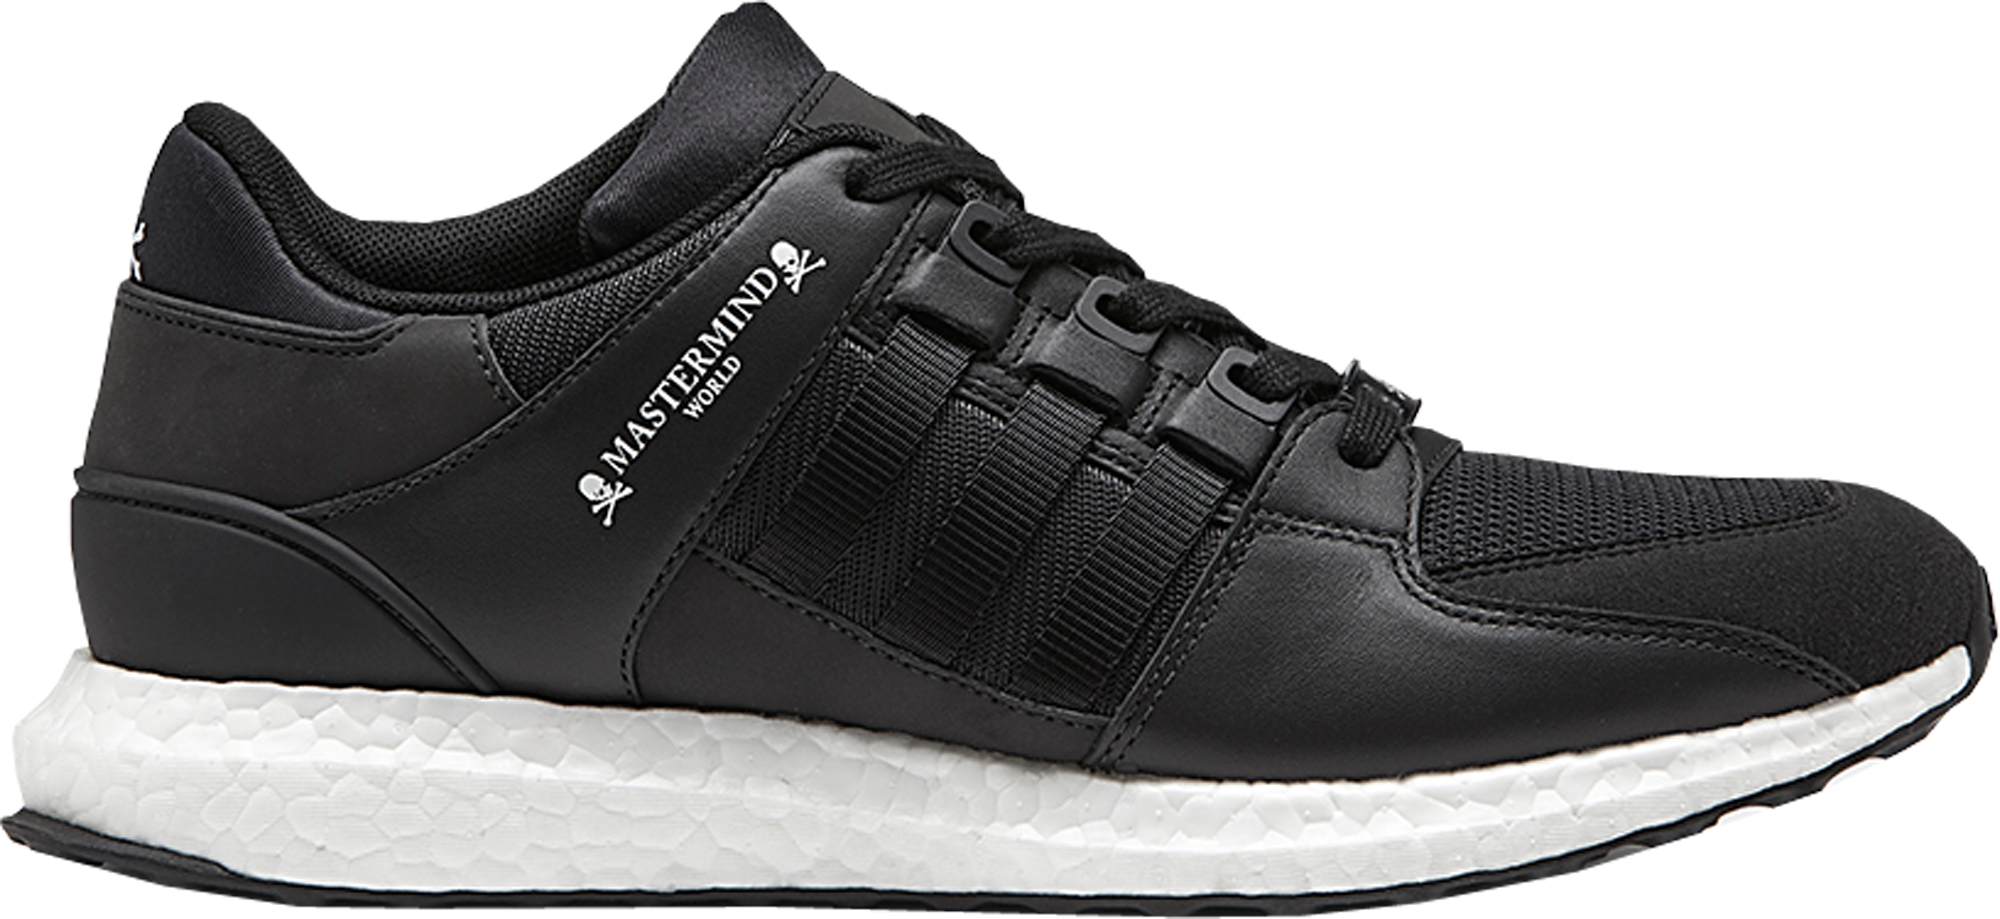 adidas EQT Support Ultra mastermind Black